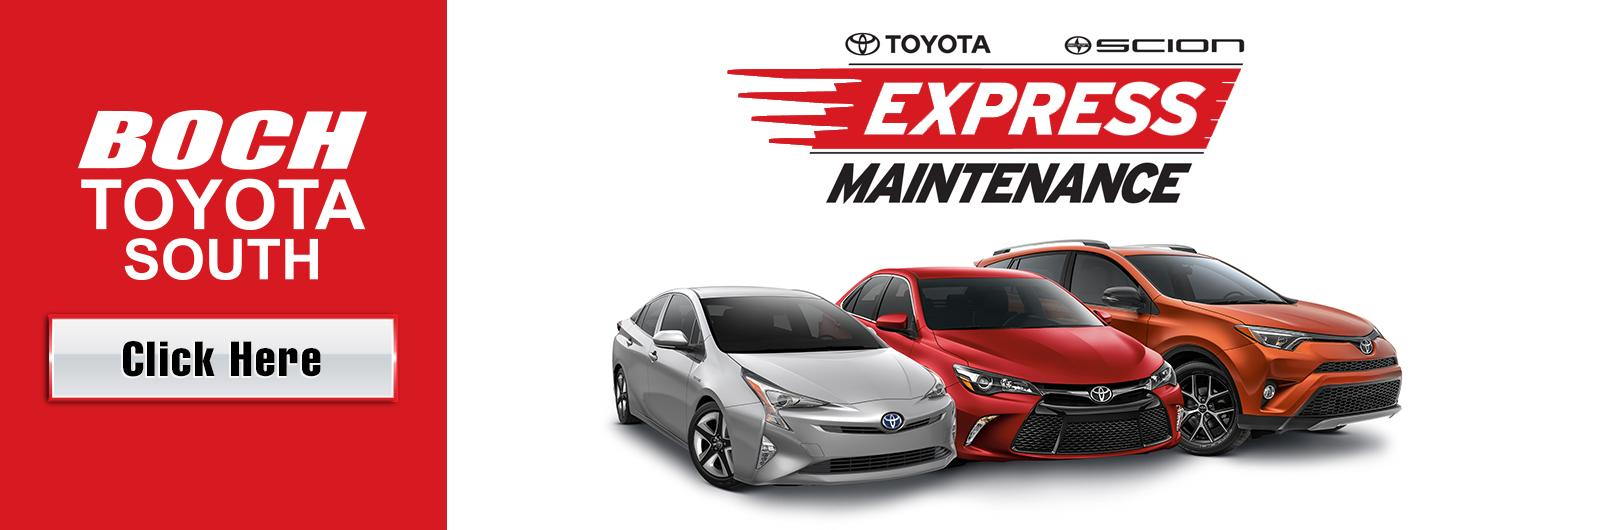 Boch toyota south attleborough ma toyota dealer autos post for Boch honda norwood service